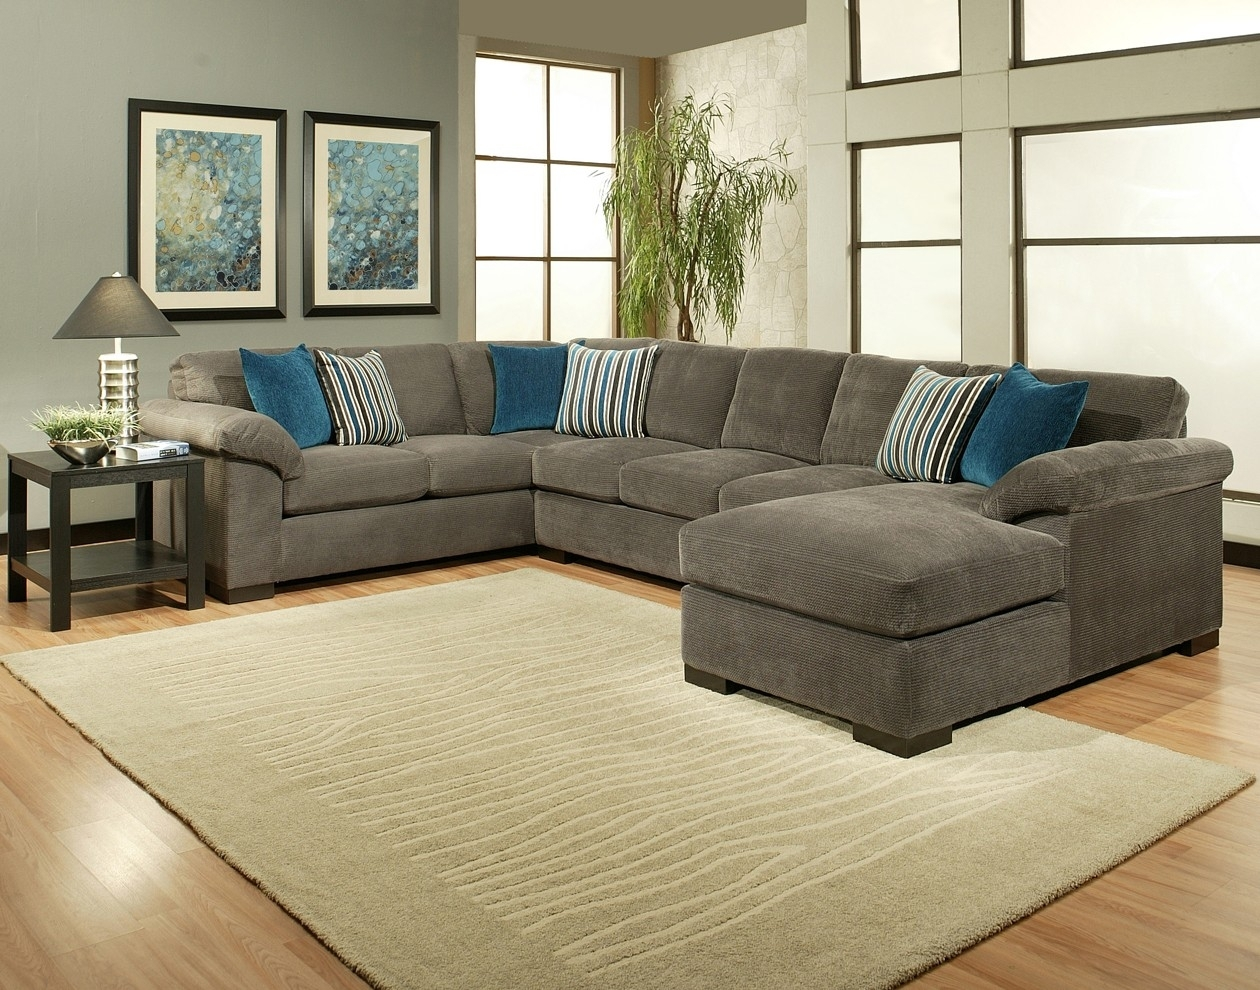 Comfort Industries 3 Pc Fire Fly Sectional Sofa In Sierra Down 3 Piece Sectionals With Laf Chaise (Image 8 of 25)